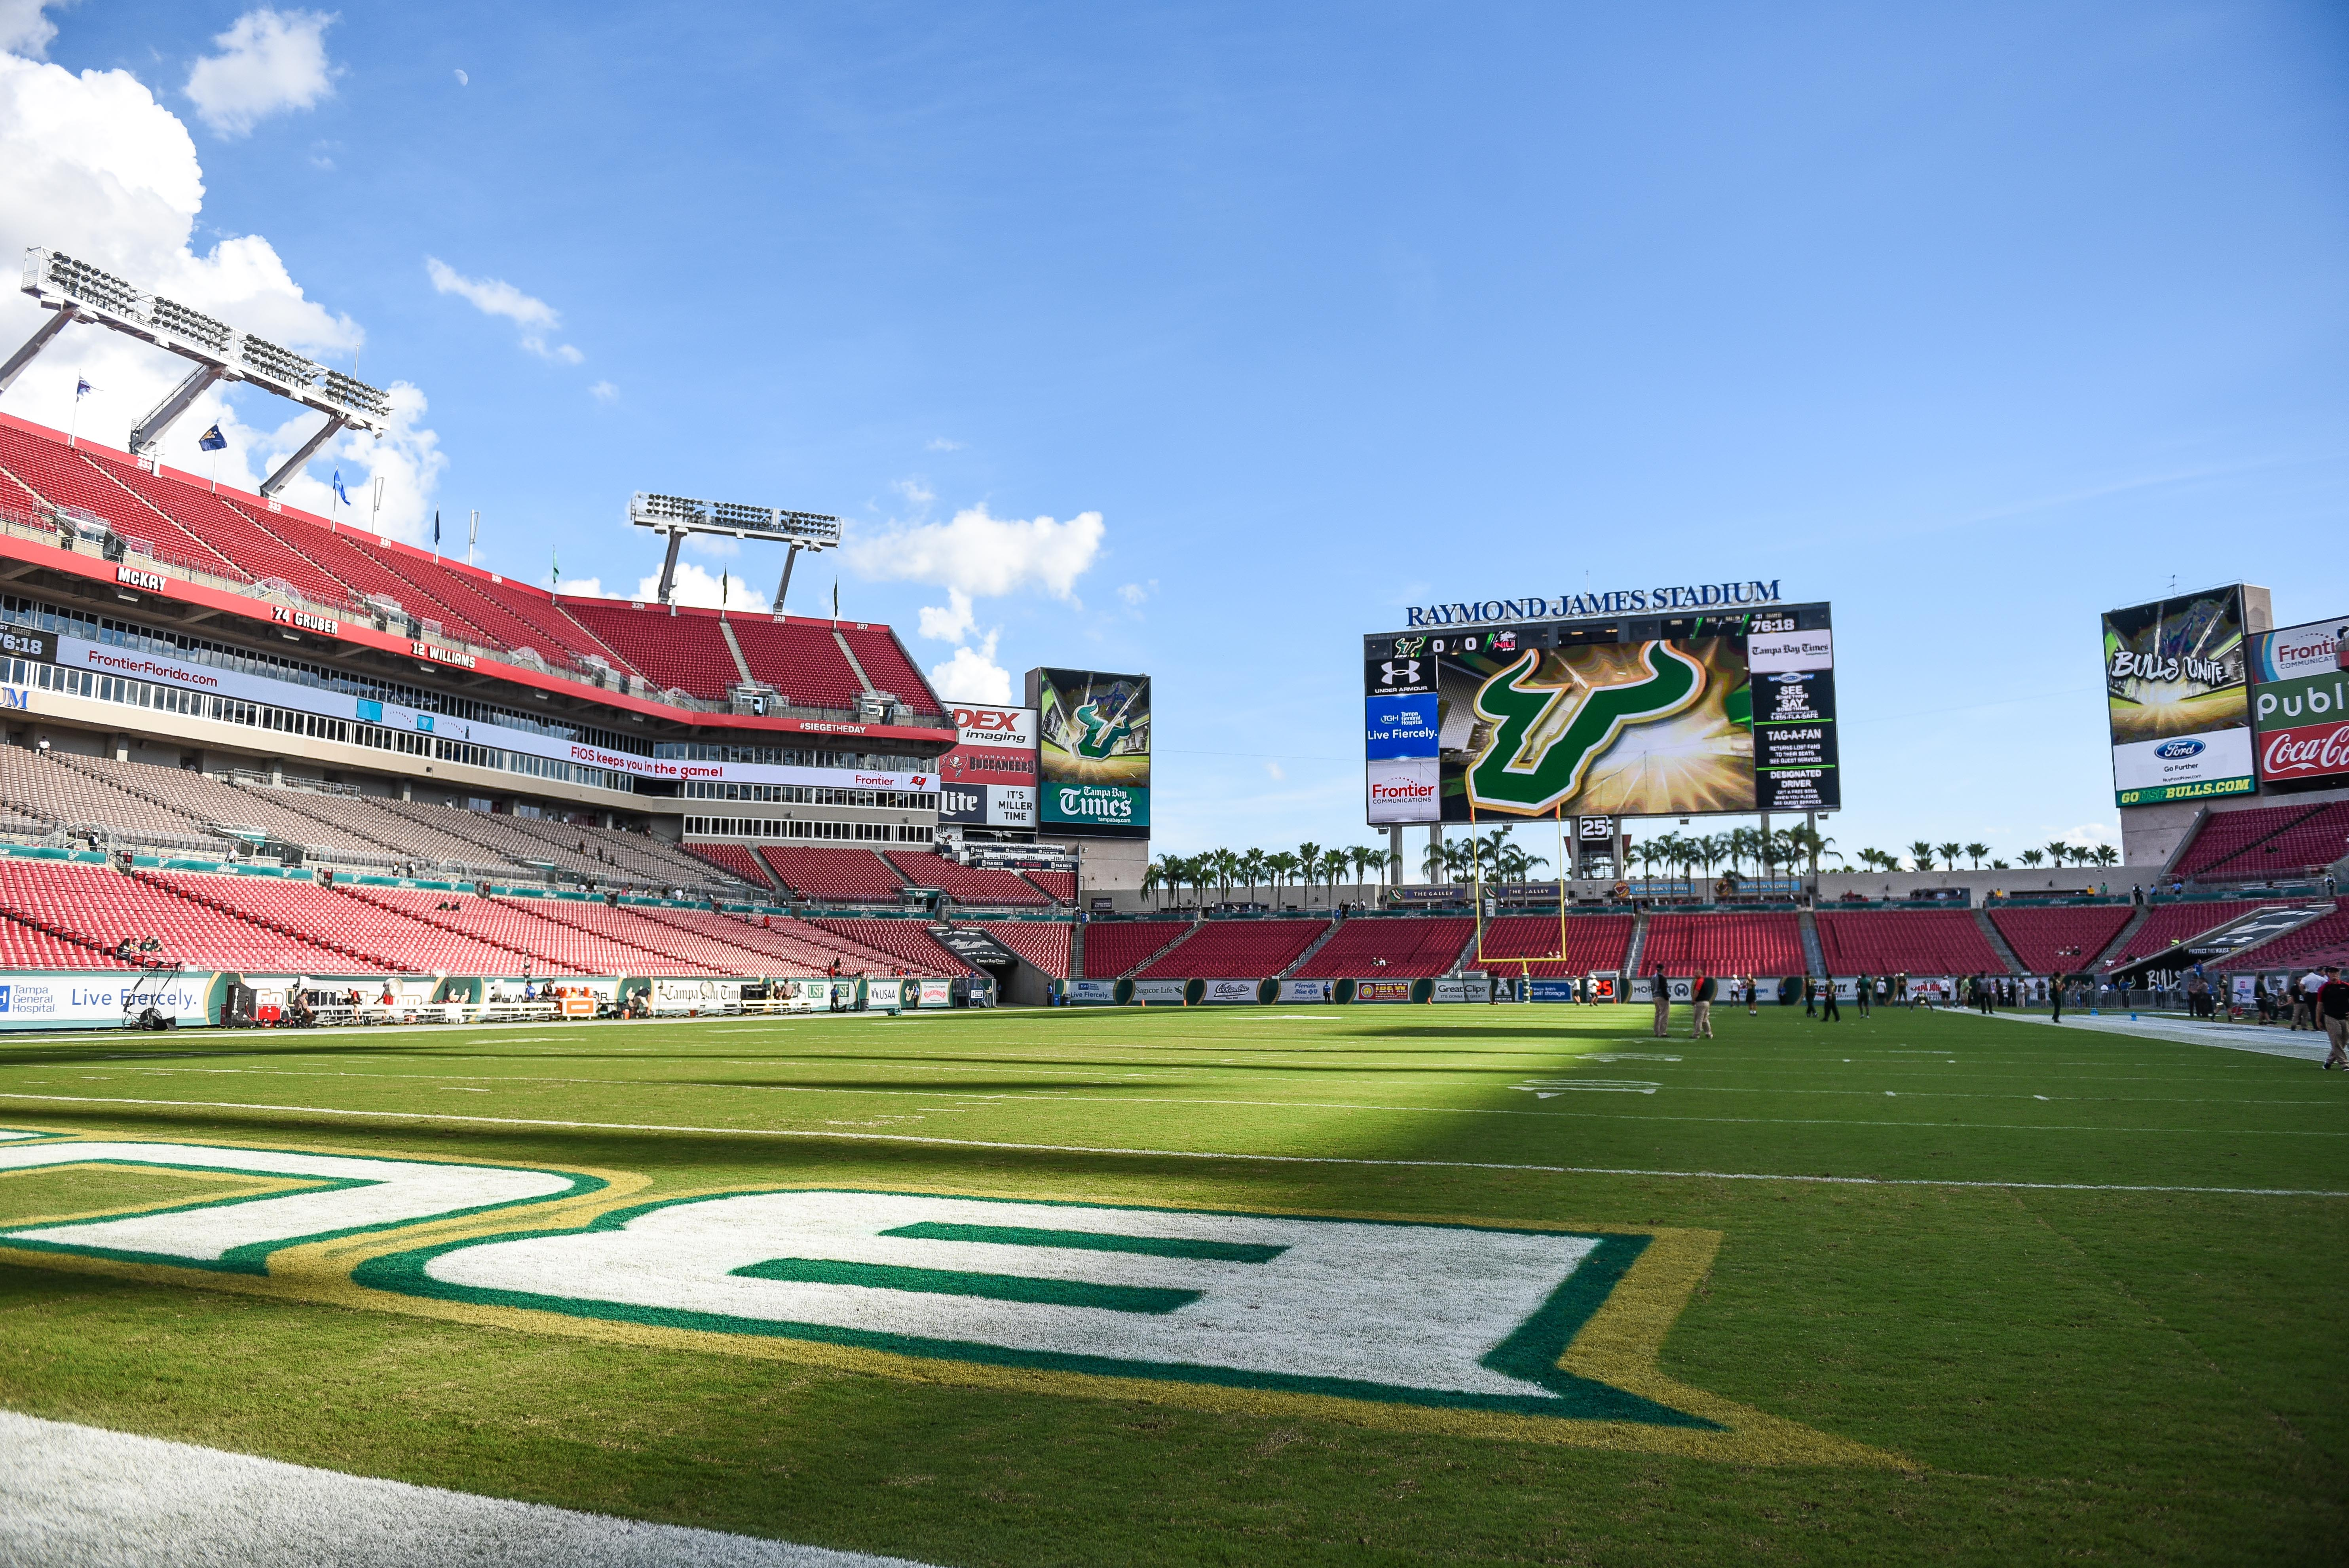 NIU vs. USF 2016 by Dennis Akers Raymond James Stadium USF Background Image 2016 by Dennis Akers | SoFloBulls.com